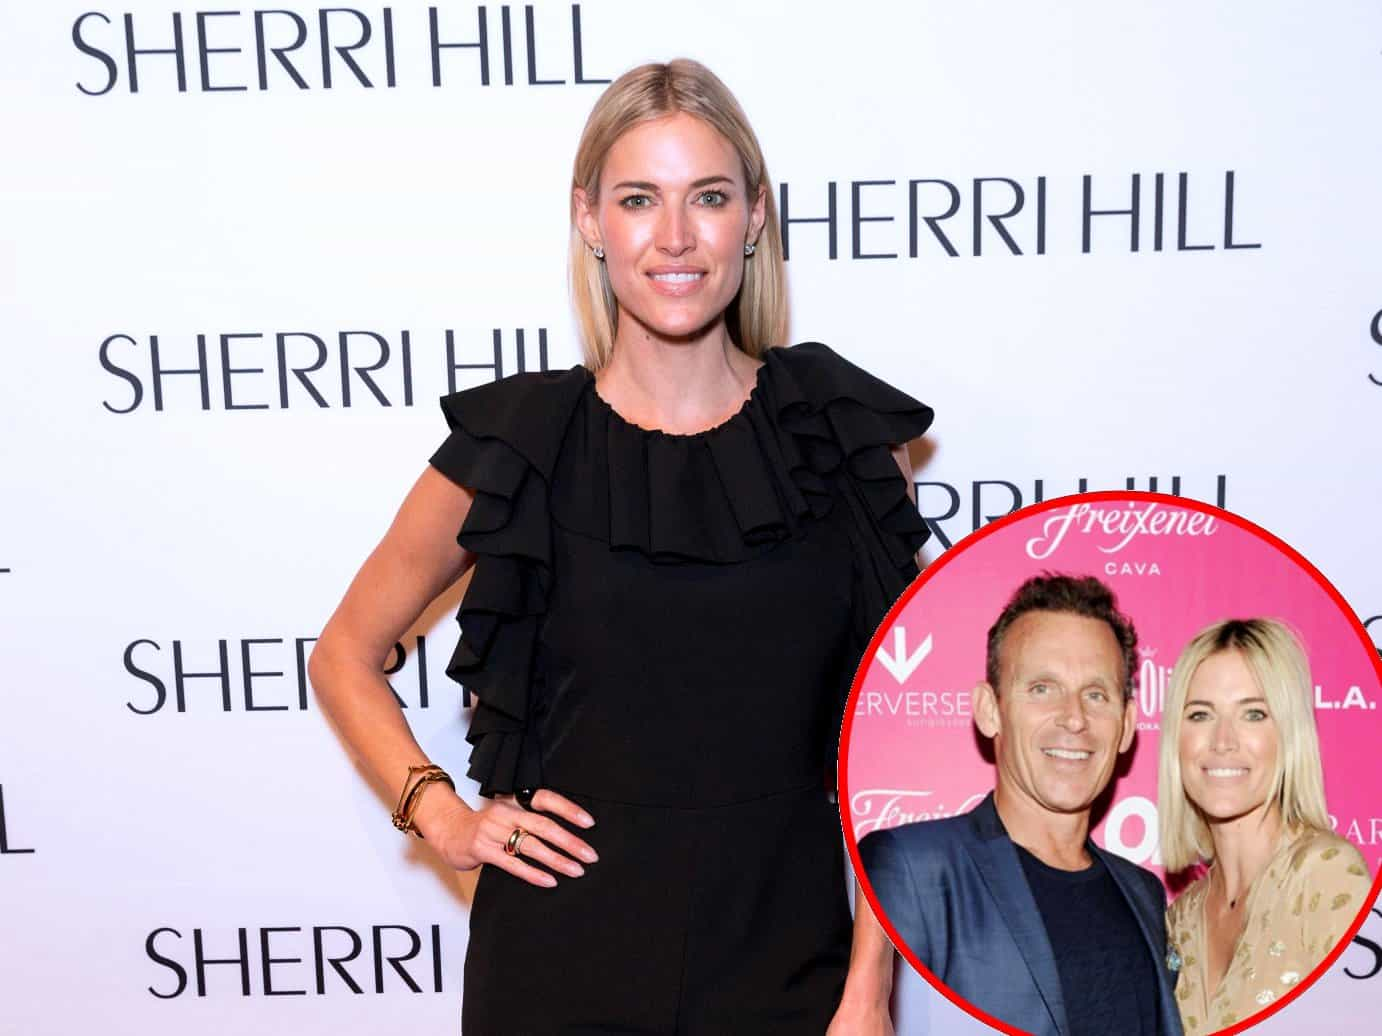 Former RHONY Star Kristen Taekman Opens Up About Marriage Drama, the Worst Part of RHONY and Reveals if She'd Return to Reality TV